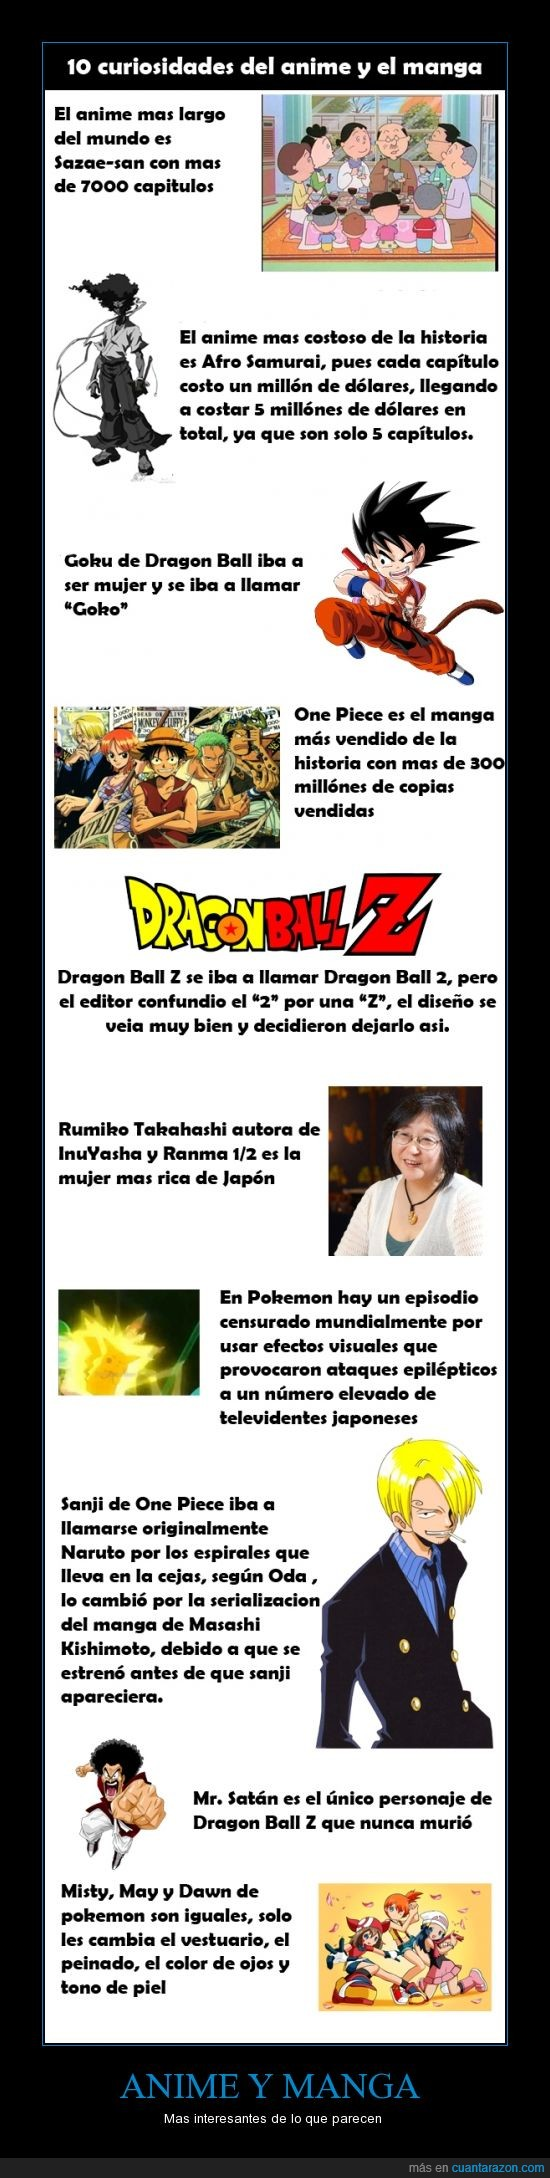 anime,curiosidades,Dragon Ball,dragon ball z,goku,inuyasha,manga,naruto,one piece,pokemon,sanji,sazae-san